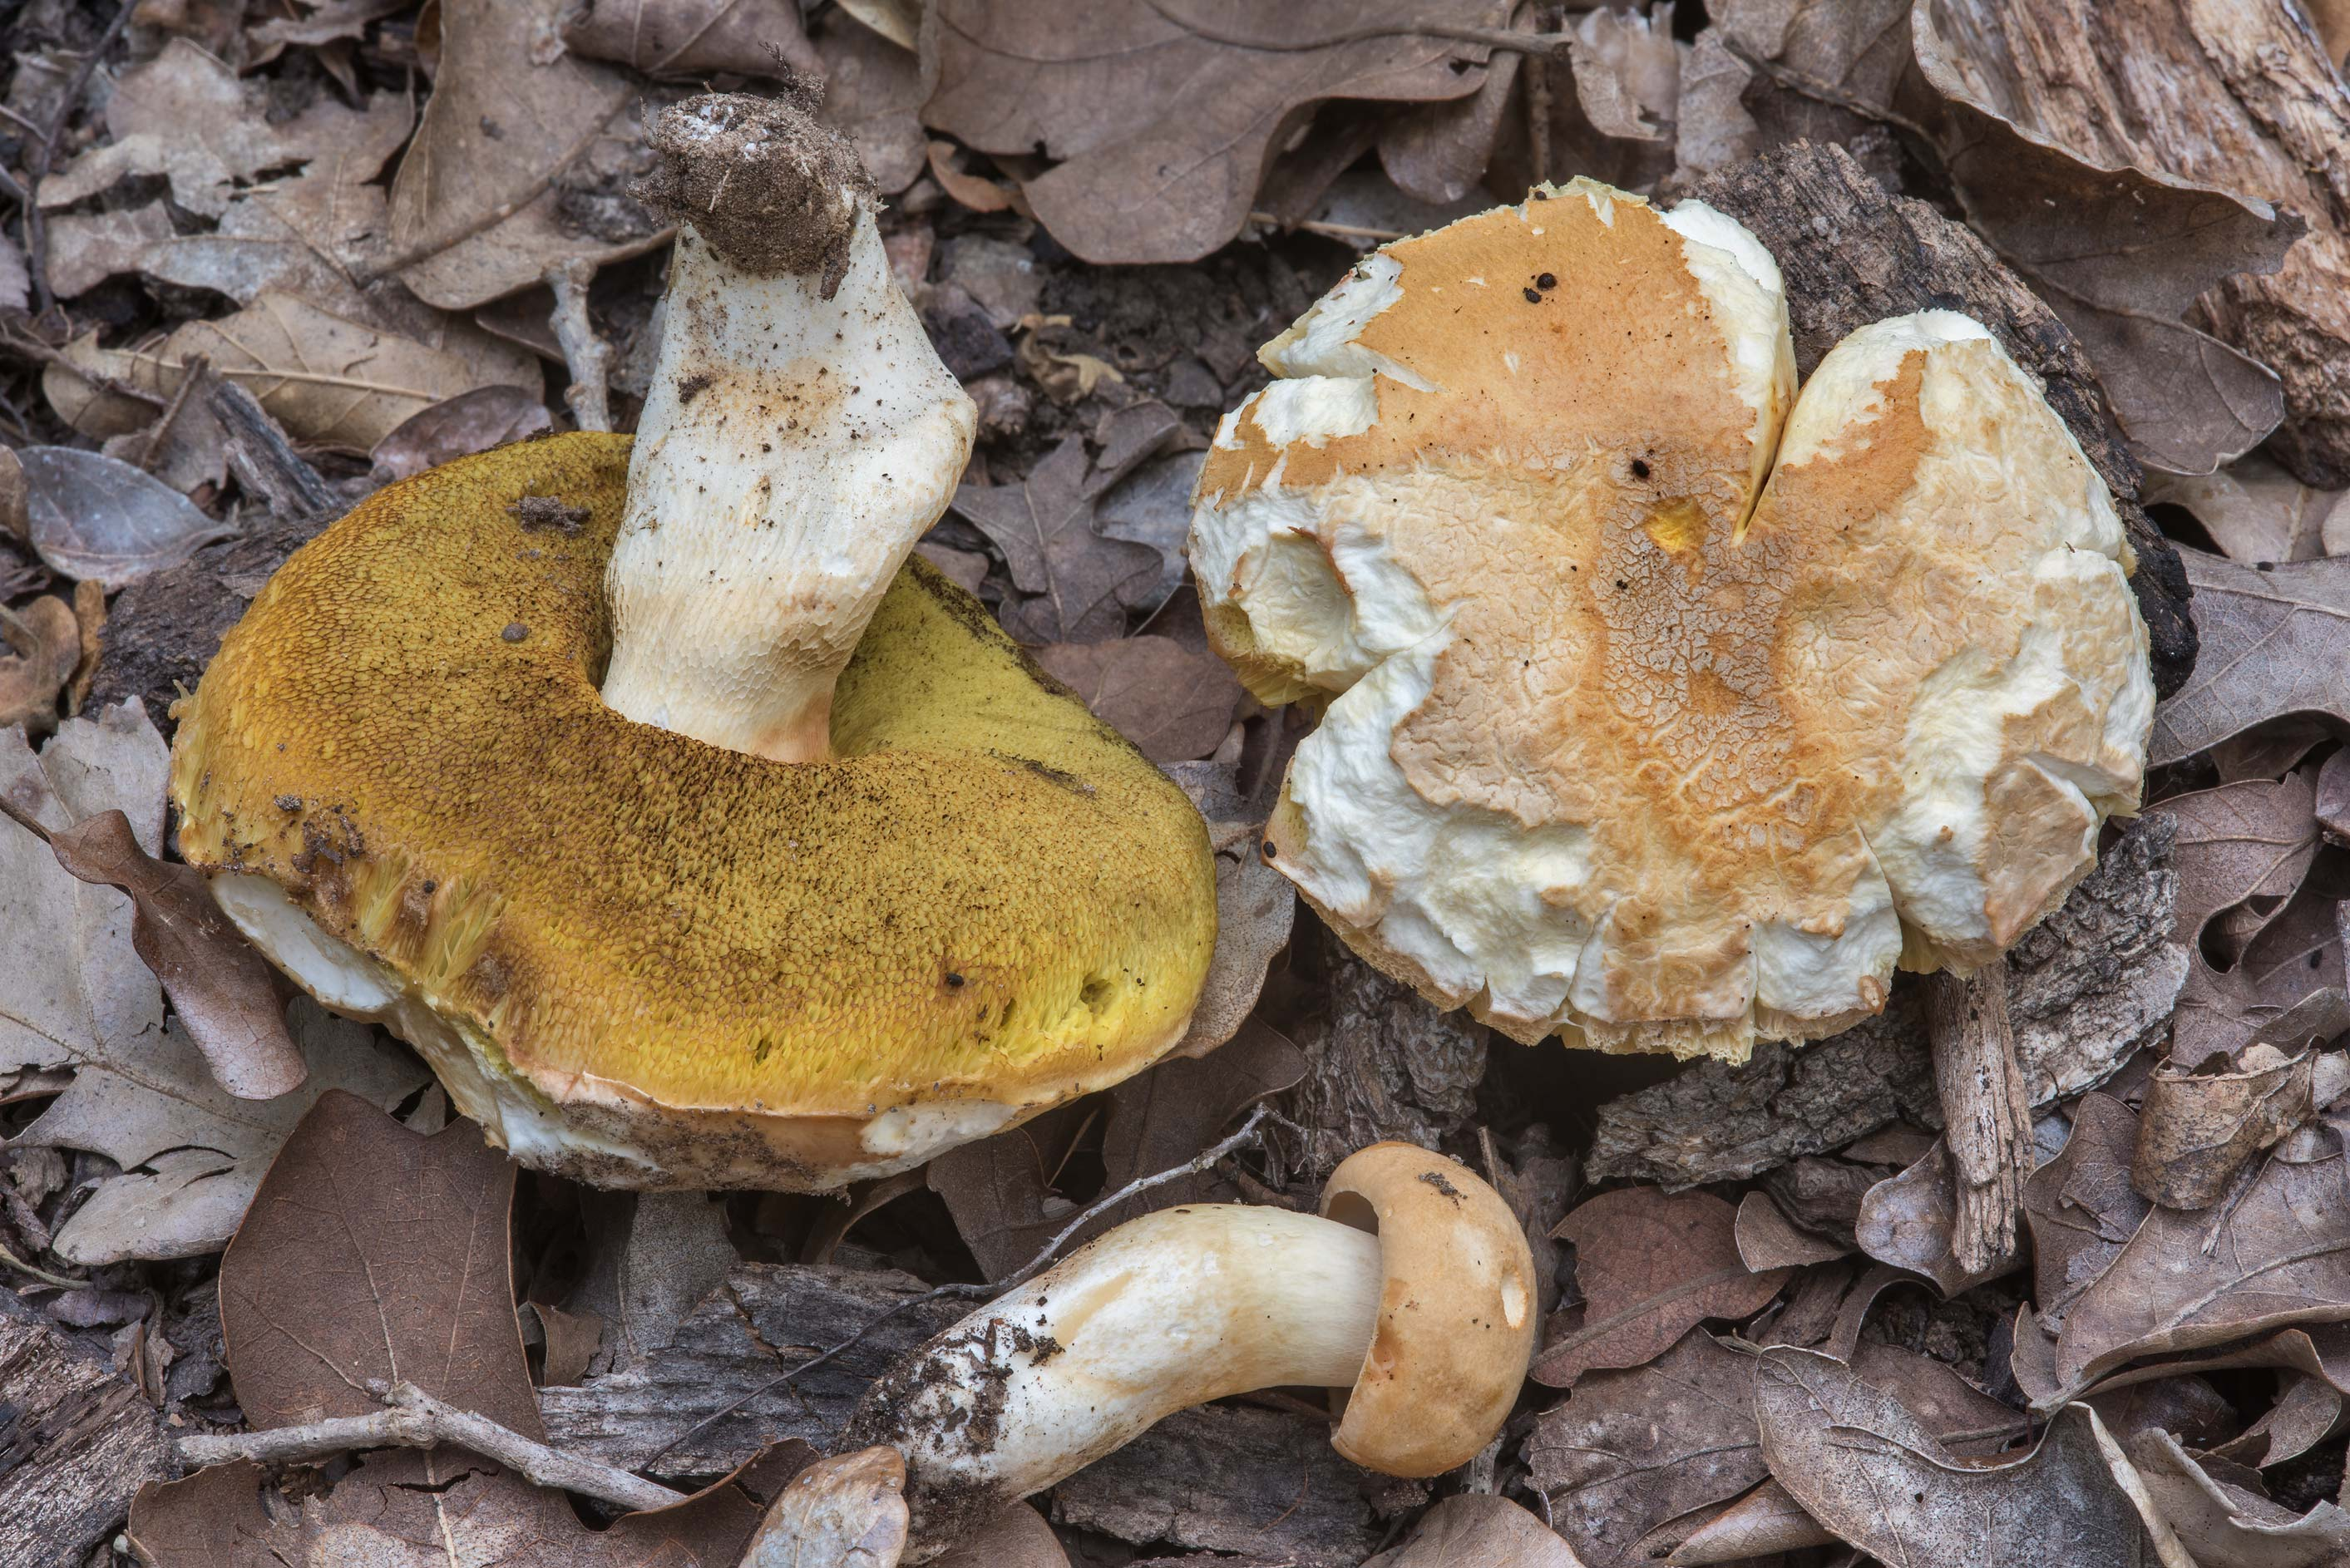 Various bolete mushrooms on Yaupon Loop Trail in Lick Creek Park. College Station, Texas